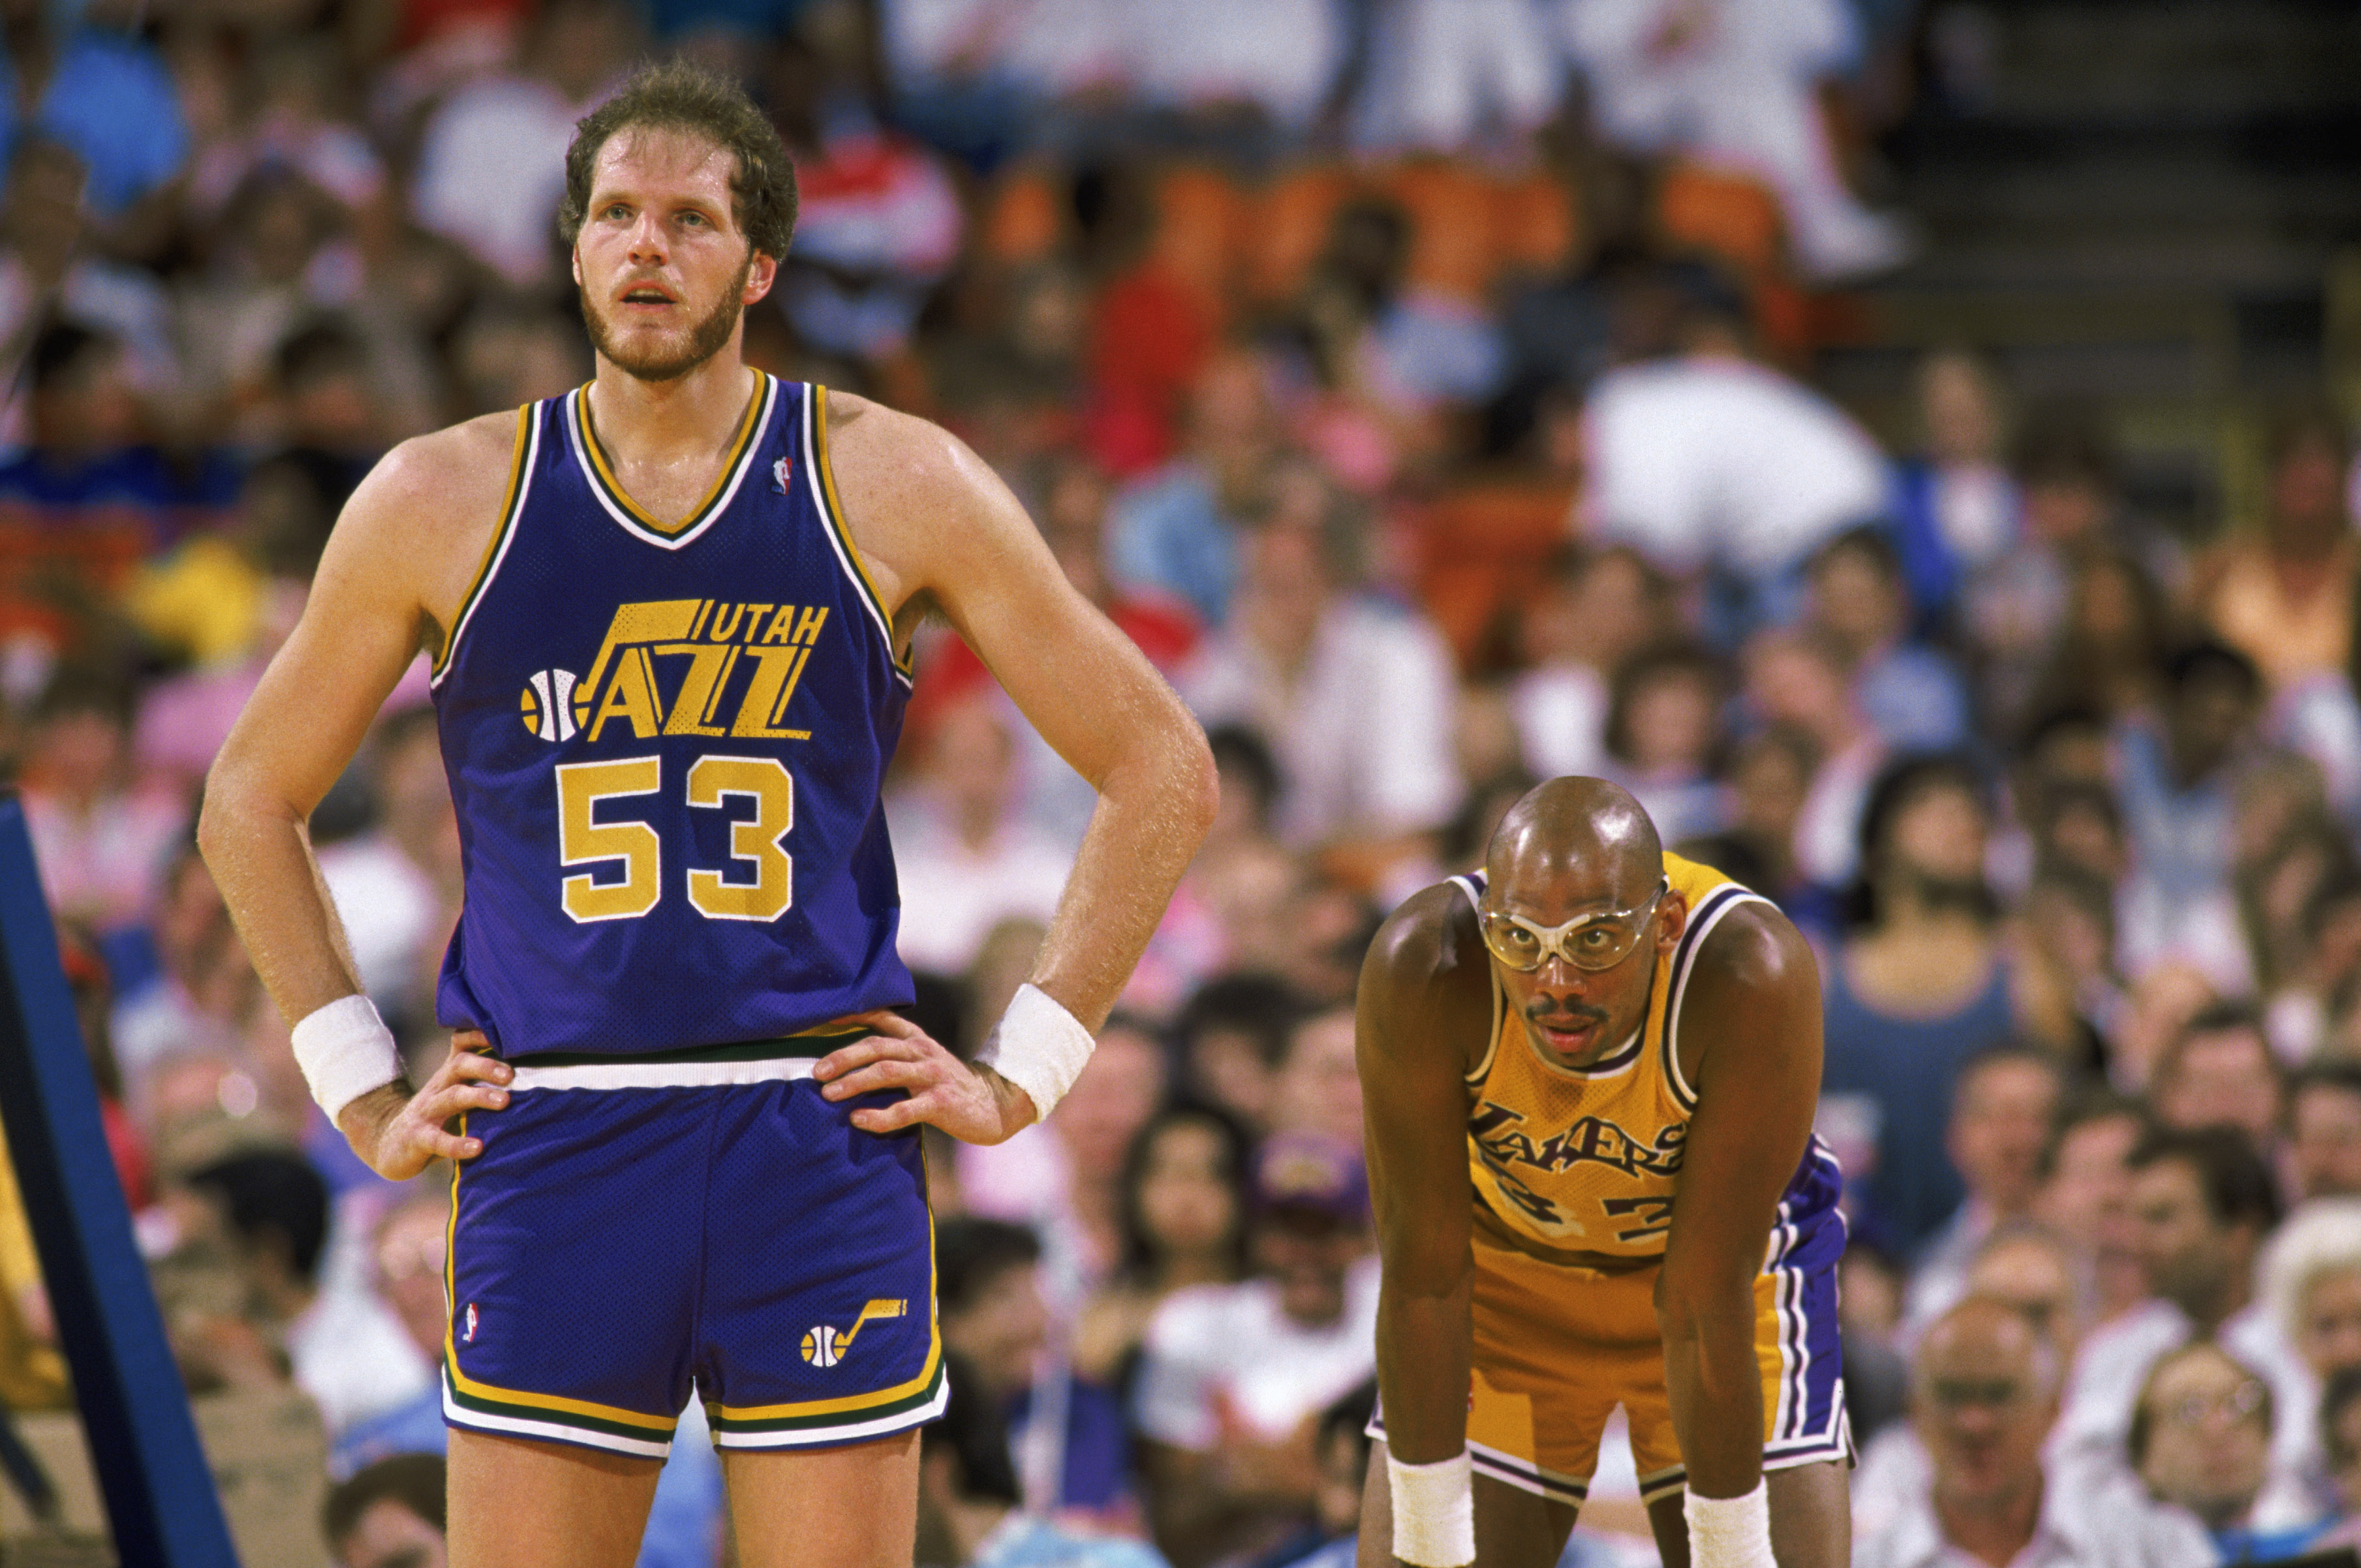 SALT LAKE CITY - 1989:  Mark Eaton #53 of the Utah Jazz stands next to Kareem Abdul-Jabbar #33 of the Los Angeles Lakers during an NBA game at The Salt Palace in Salt Lake City, Utah in 1989. (Photo by Mike Powell/Getty Images)